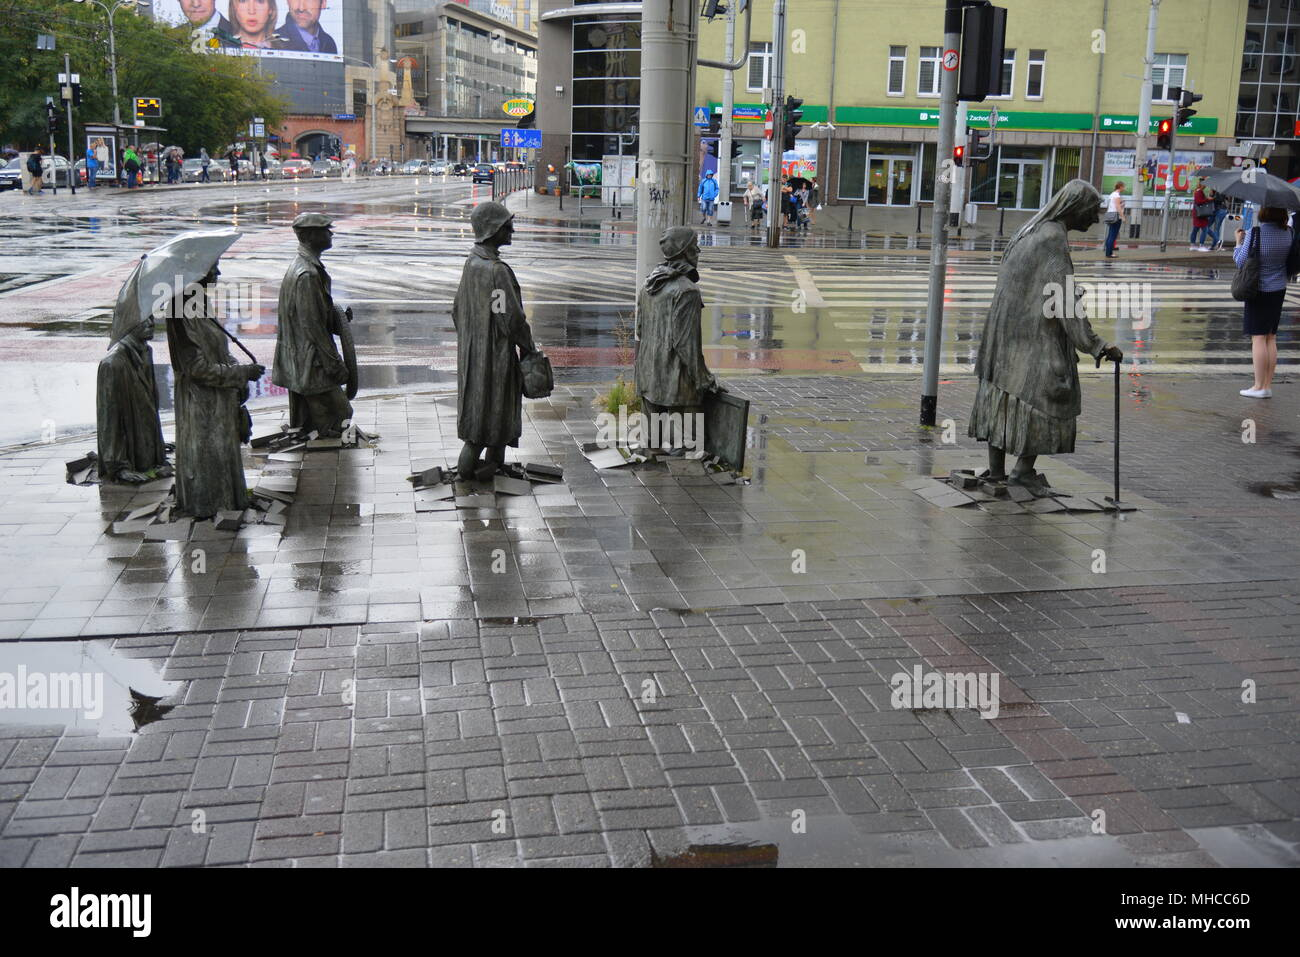 The famous sculpture 'Passage', commonly called 'Monument to the Anonymous Passerby' by Polish artist Jerzy Kalina at an intersection in Wroclaw. - Stock Image